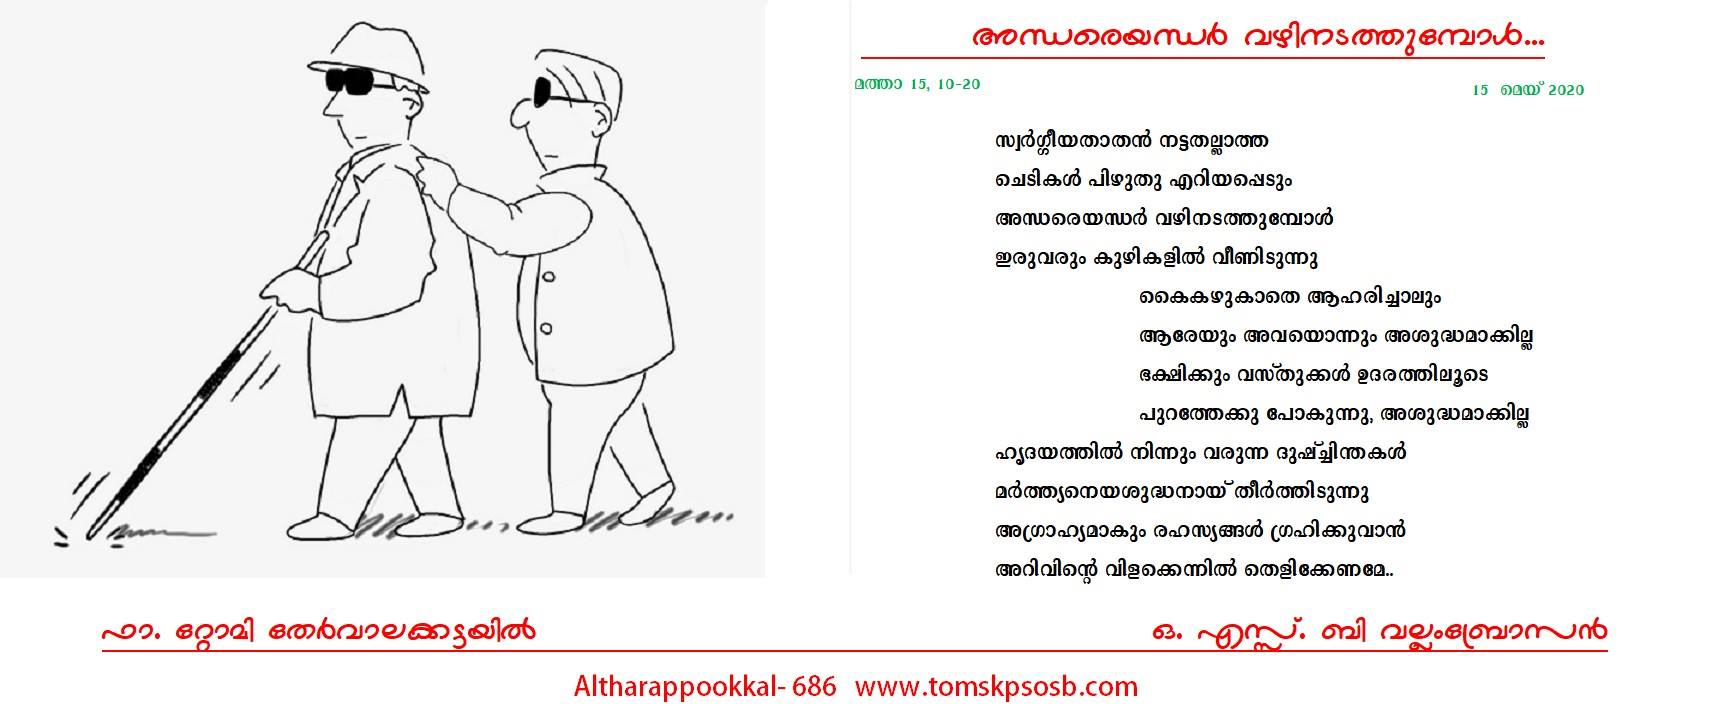 altharapookkal-626 (5)